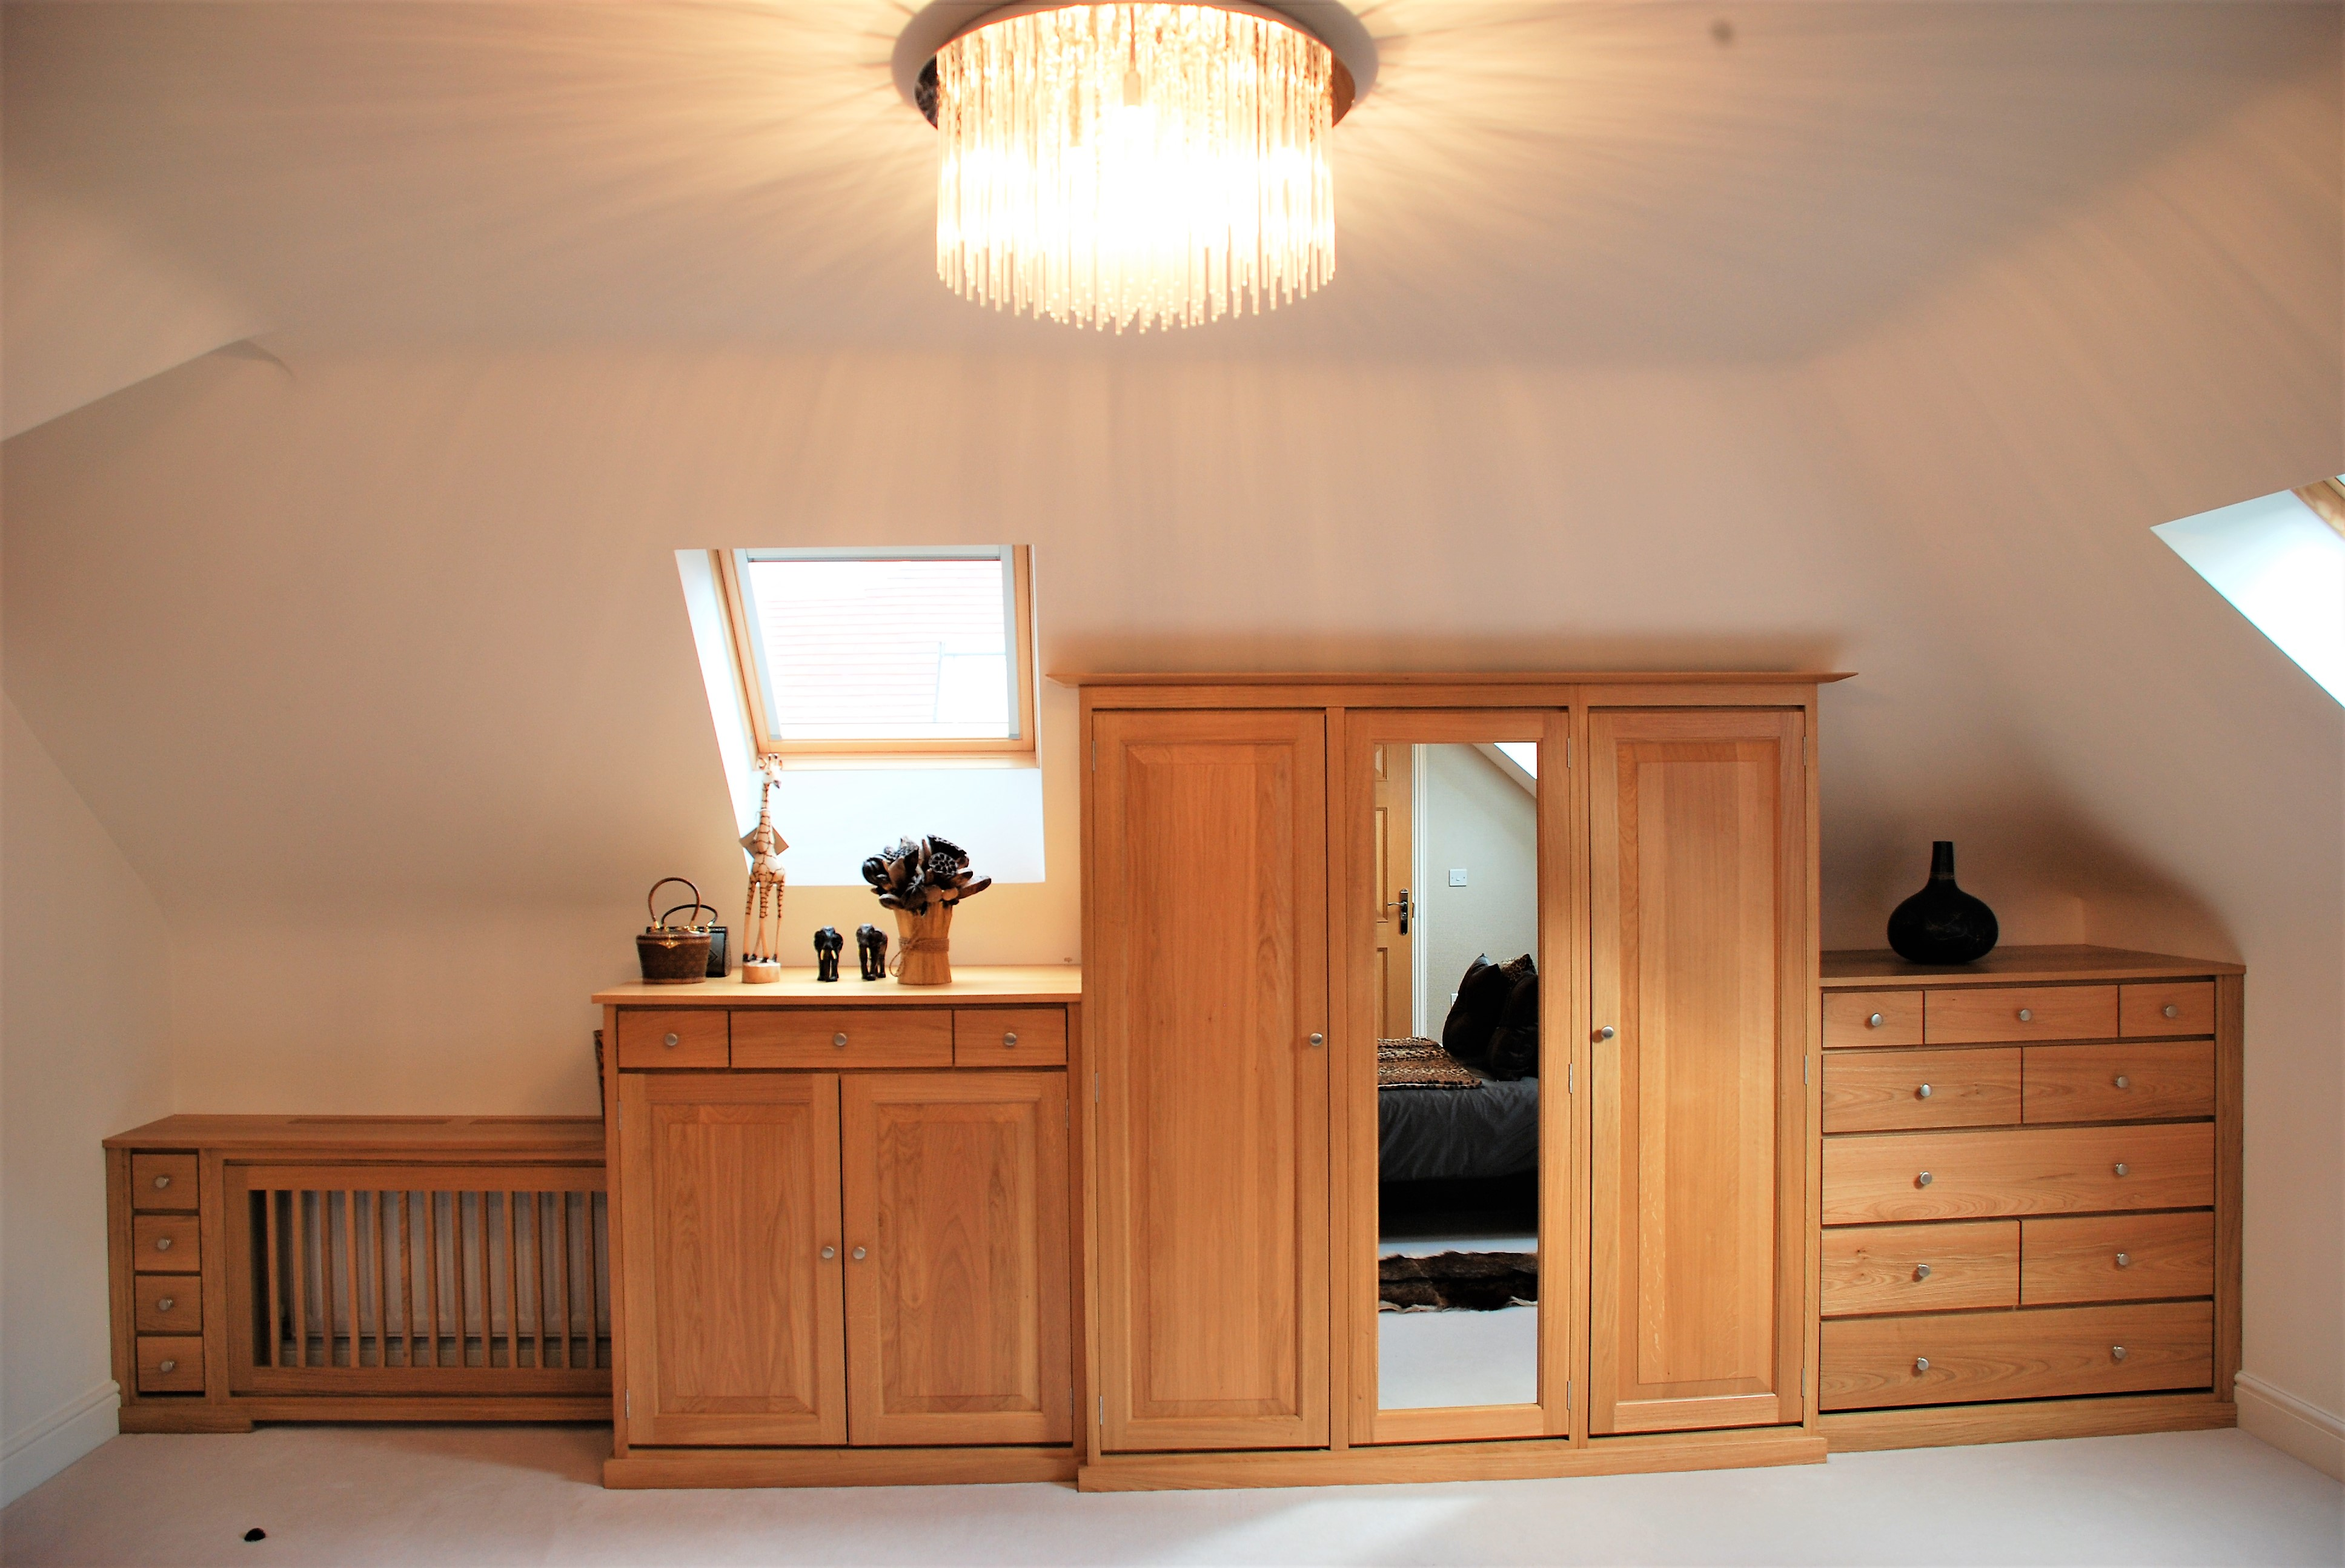 Bespoke Bedroom Furniture Makers In St Albans Alban Interiors